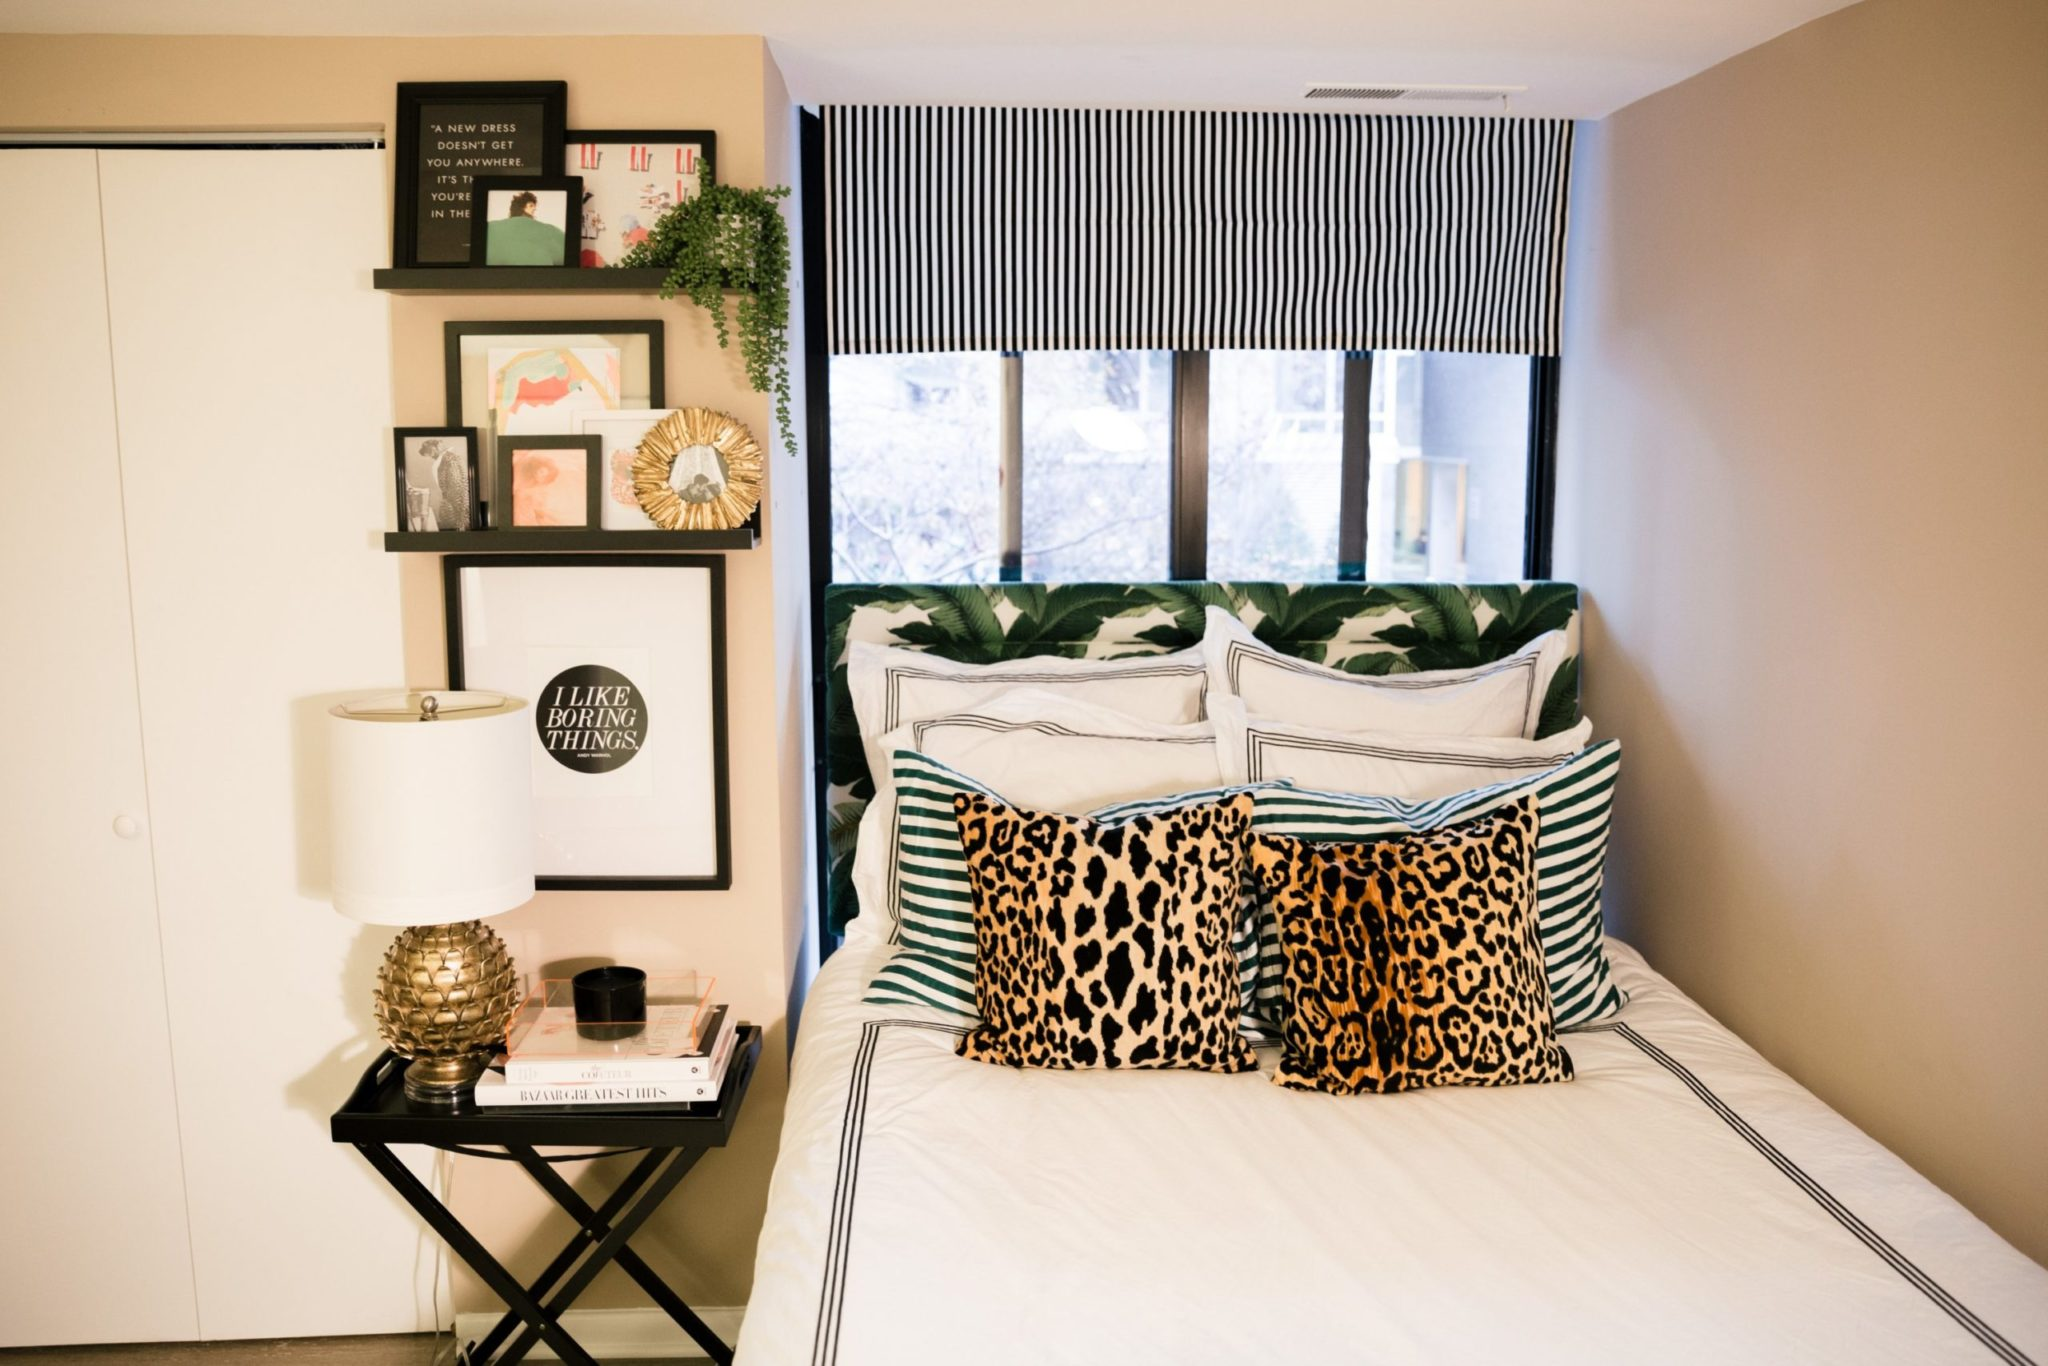 Look Inside My Home: A West End Apartment With a Palm Springs-Inspired Bedroom